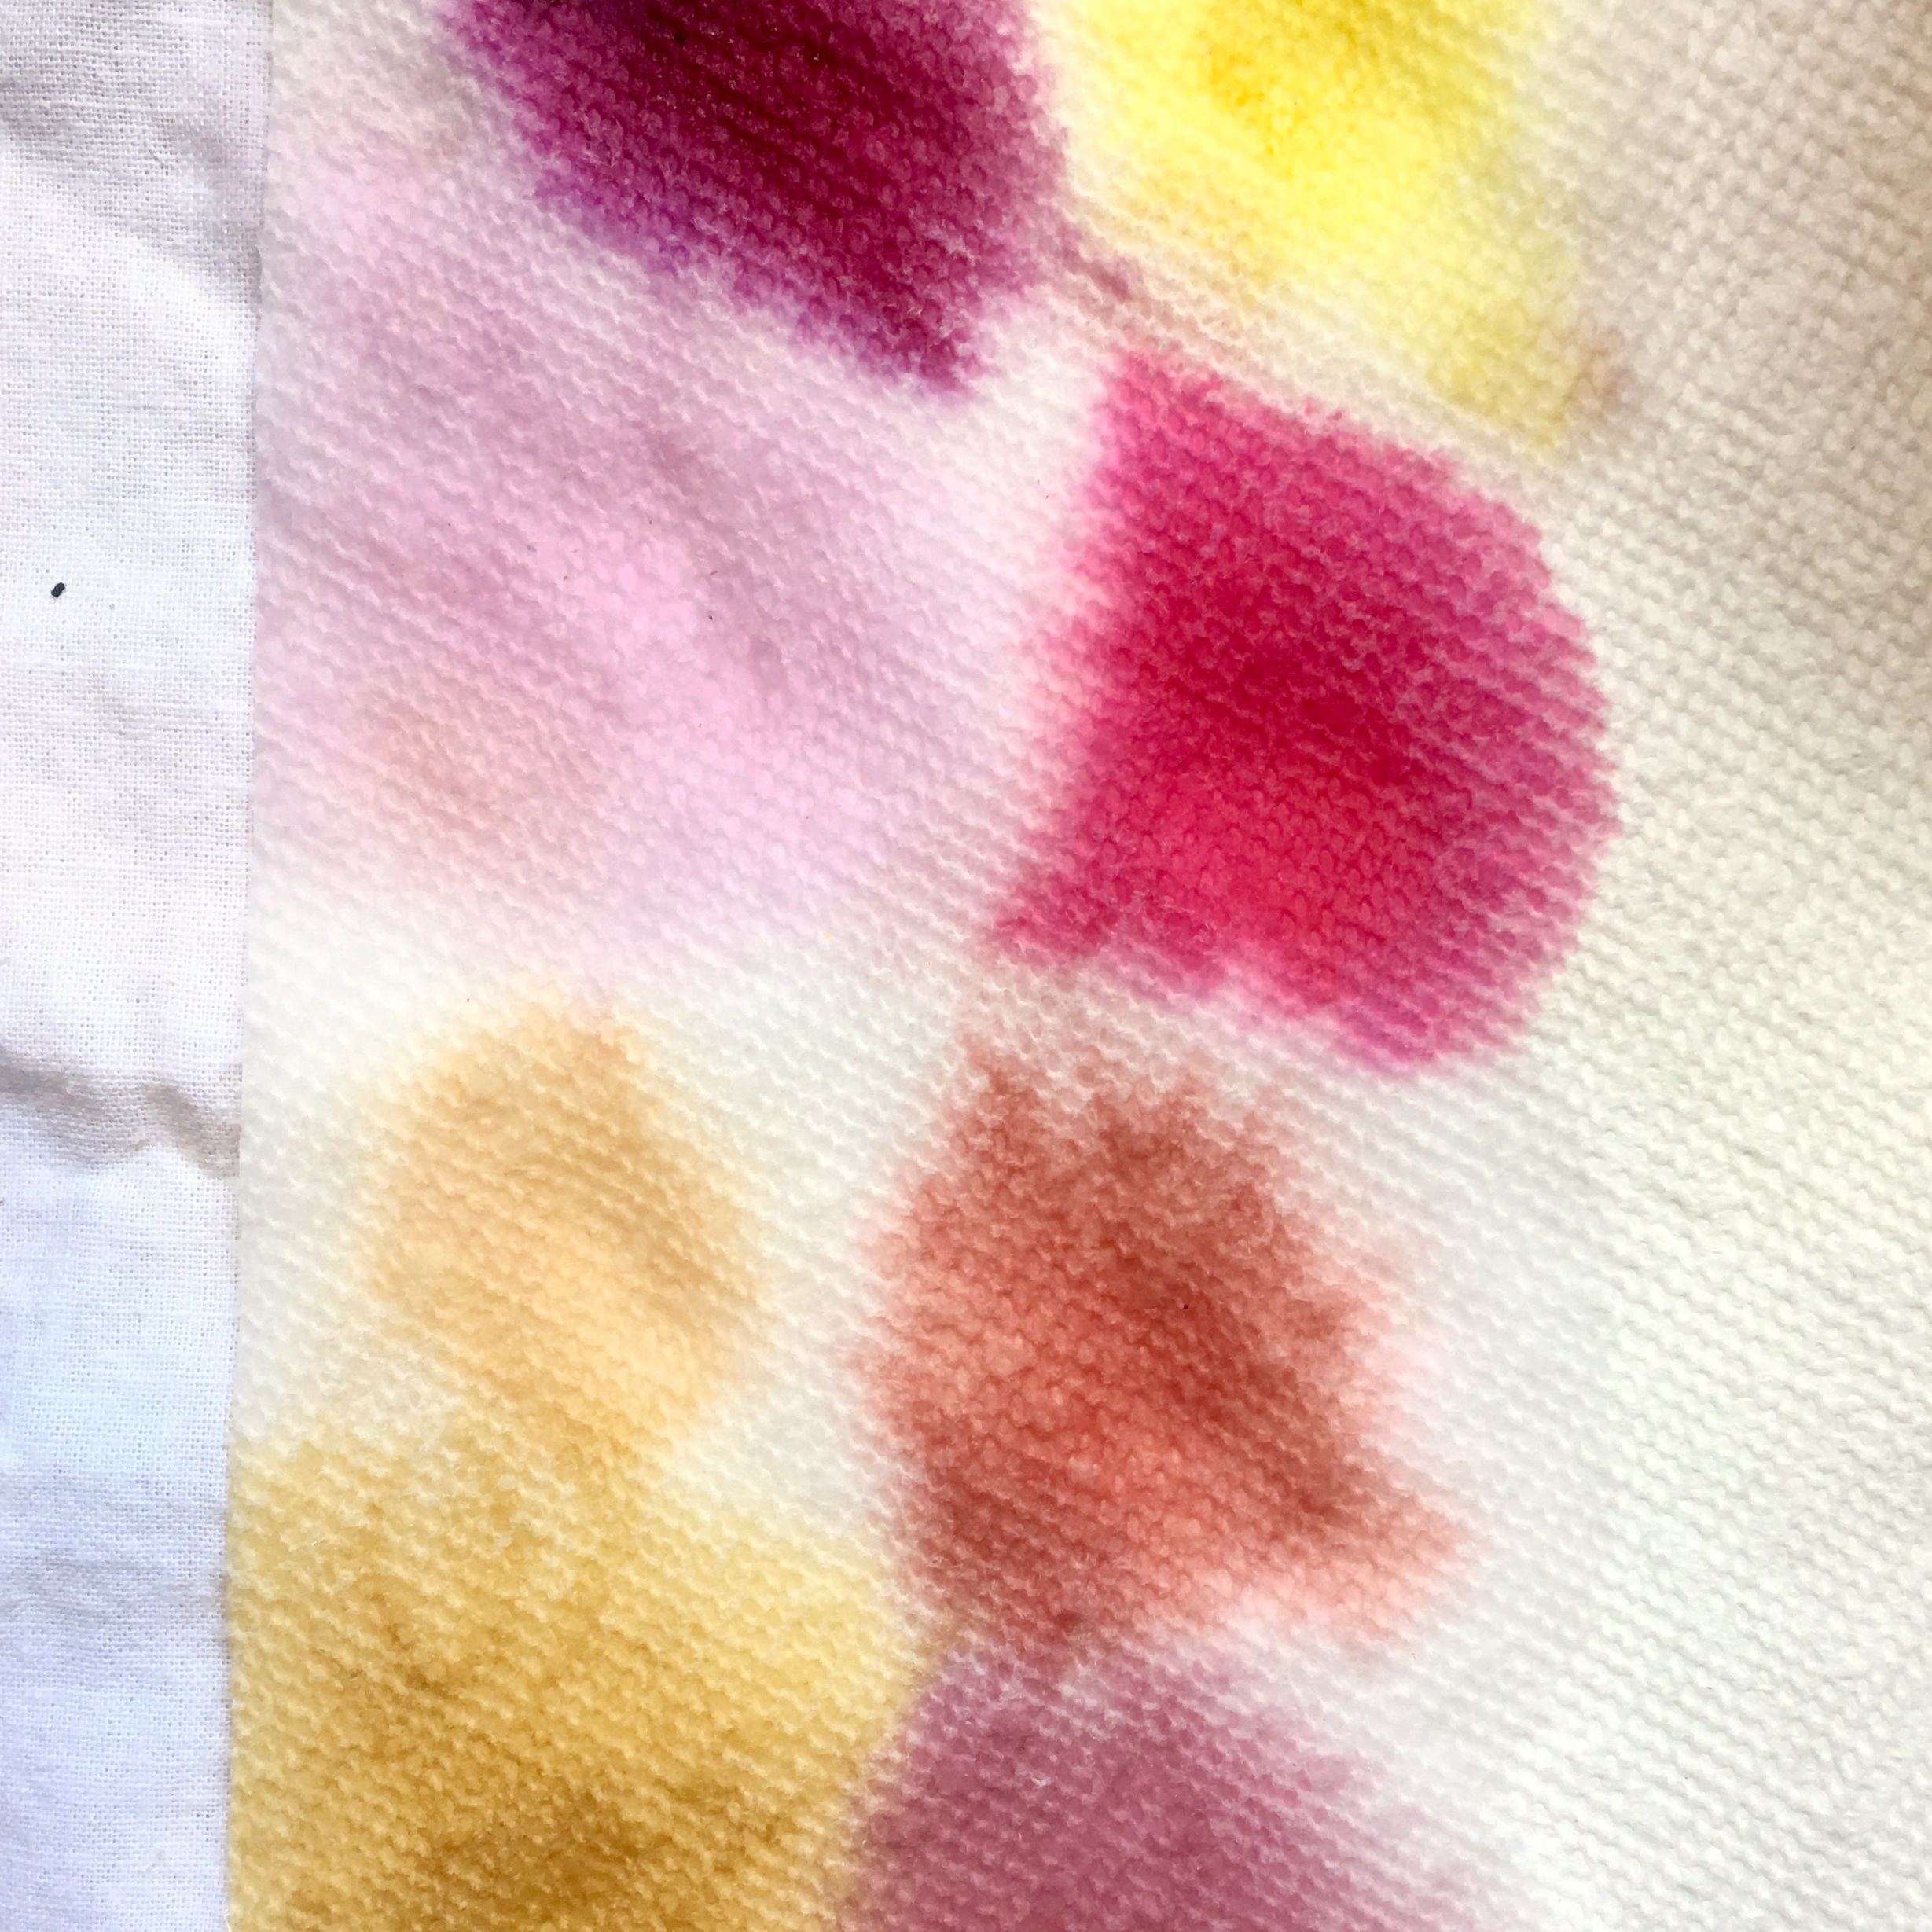 You can test your colors as they boil to see if they are vibrant enough. Place a drop or two on a paper towel. The color that shows up on the paper towel is not necessarily the color that your egg will turn, but it will give you an idea.